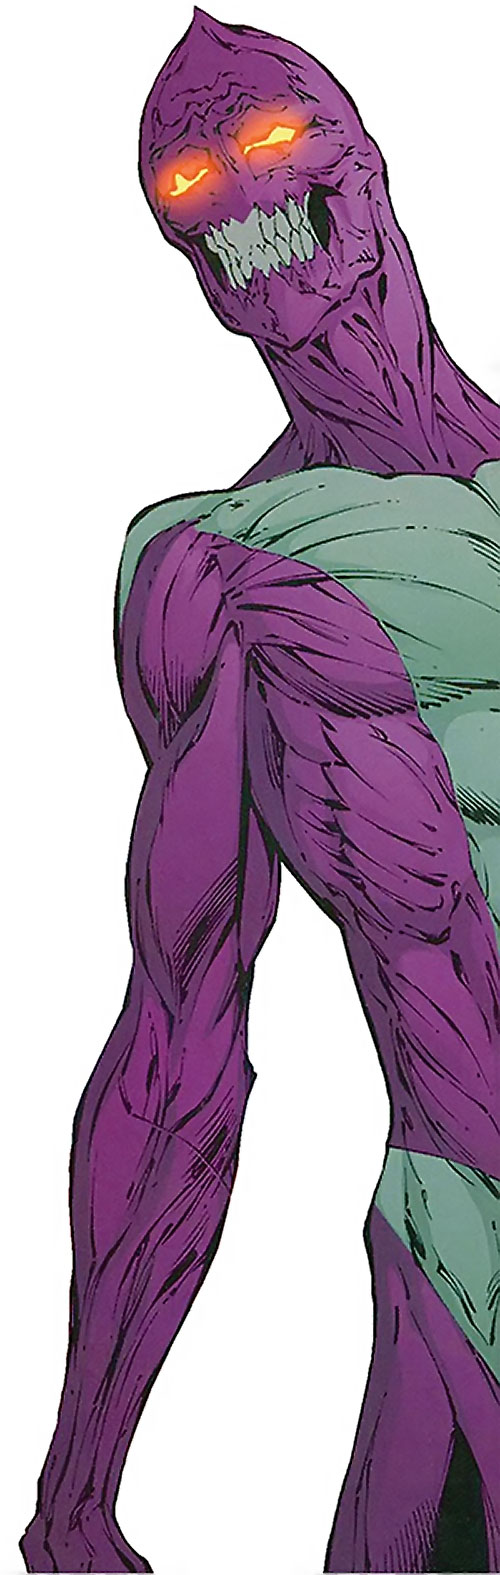 Dreamslayer of the Extremists (DC Comics) closer view